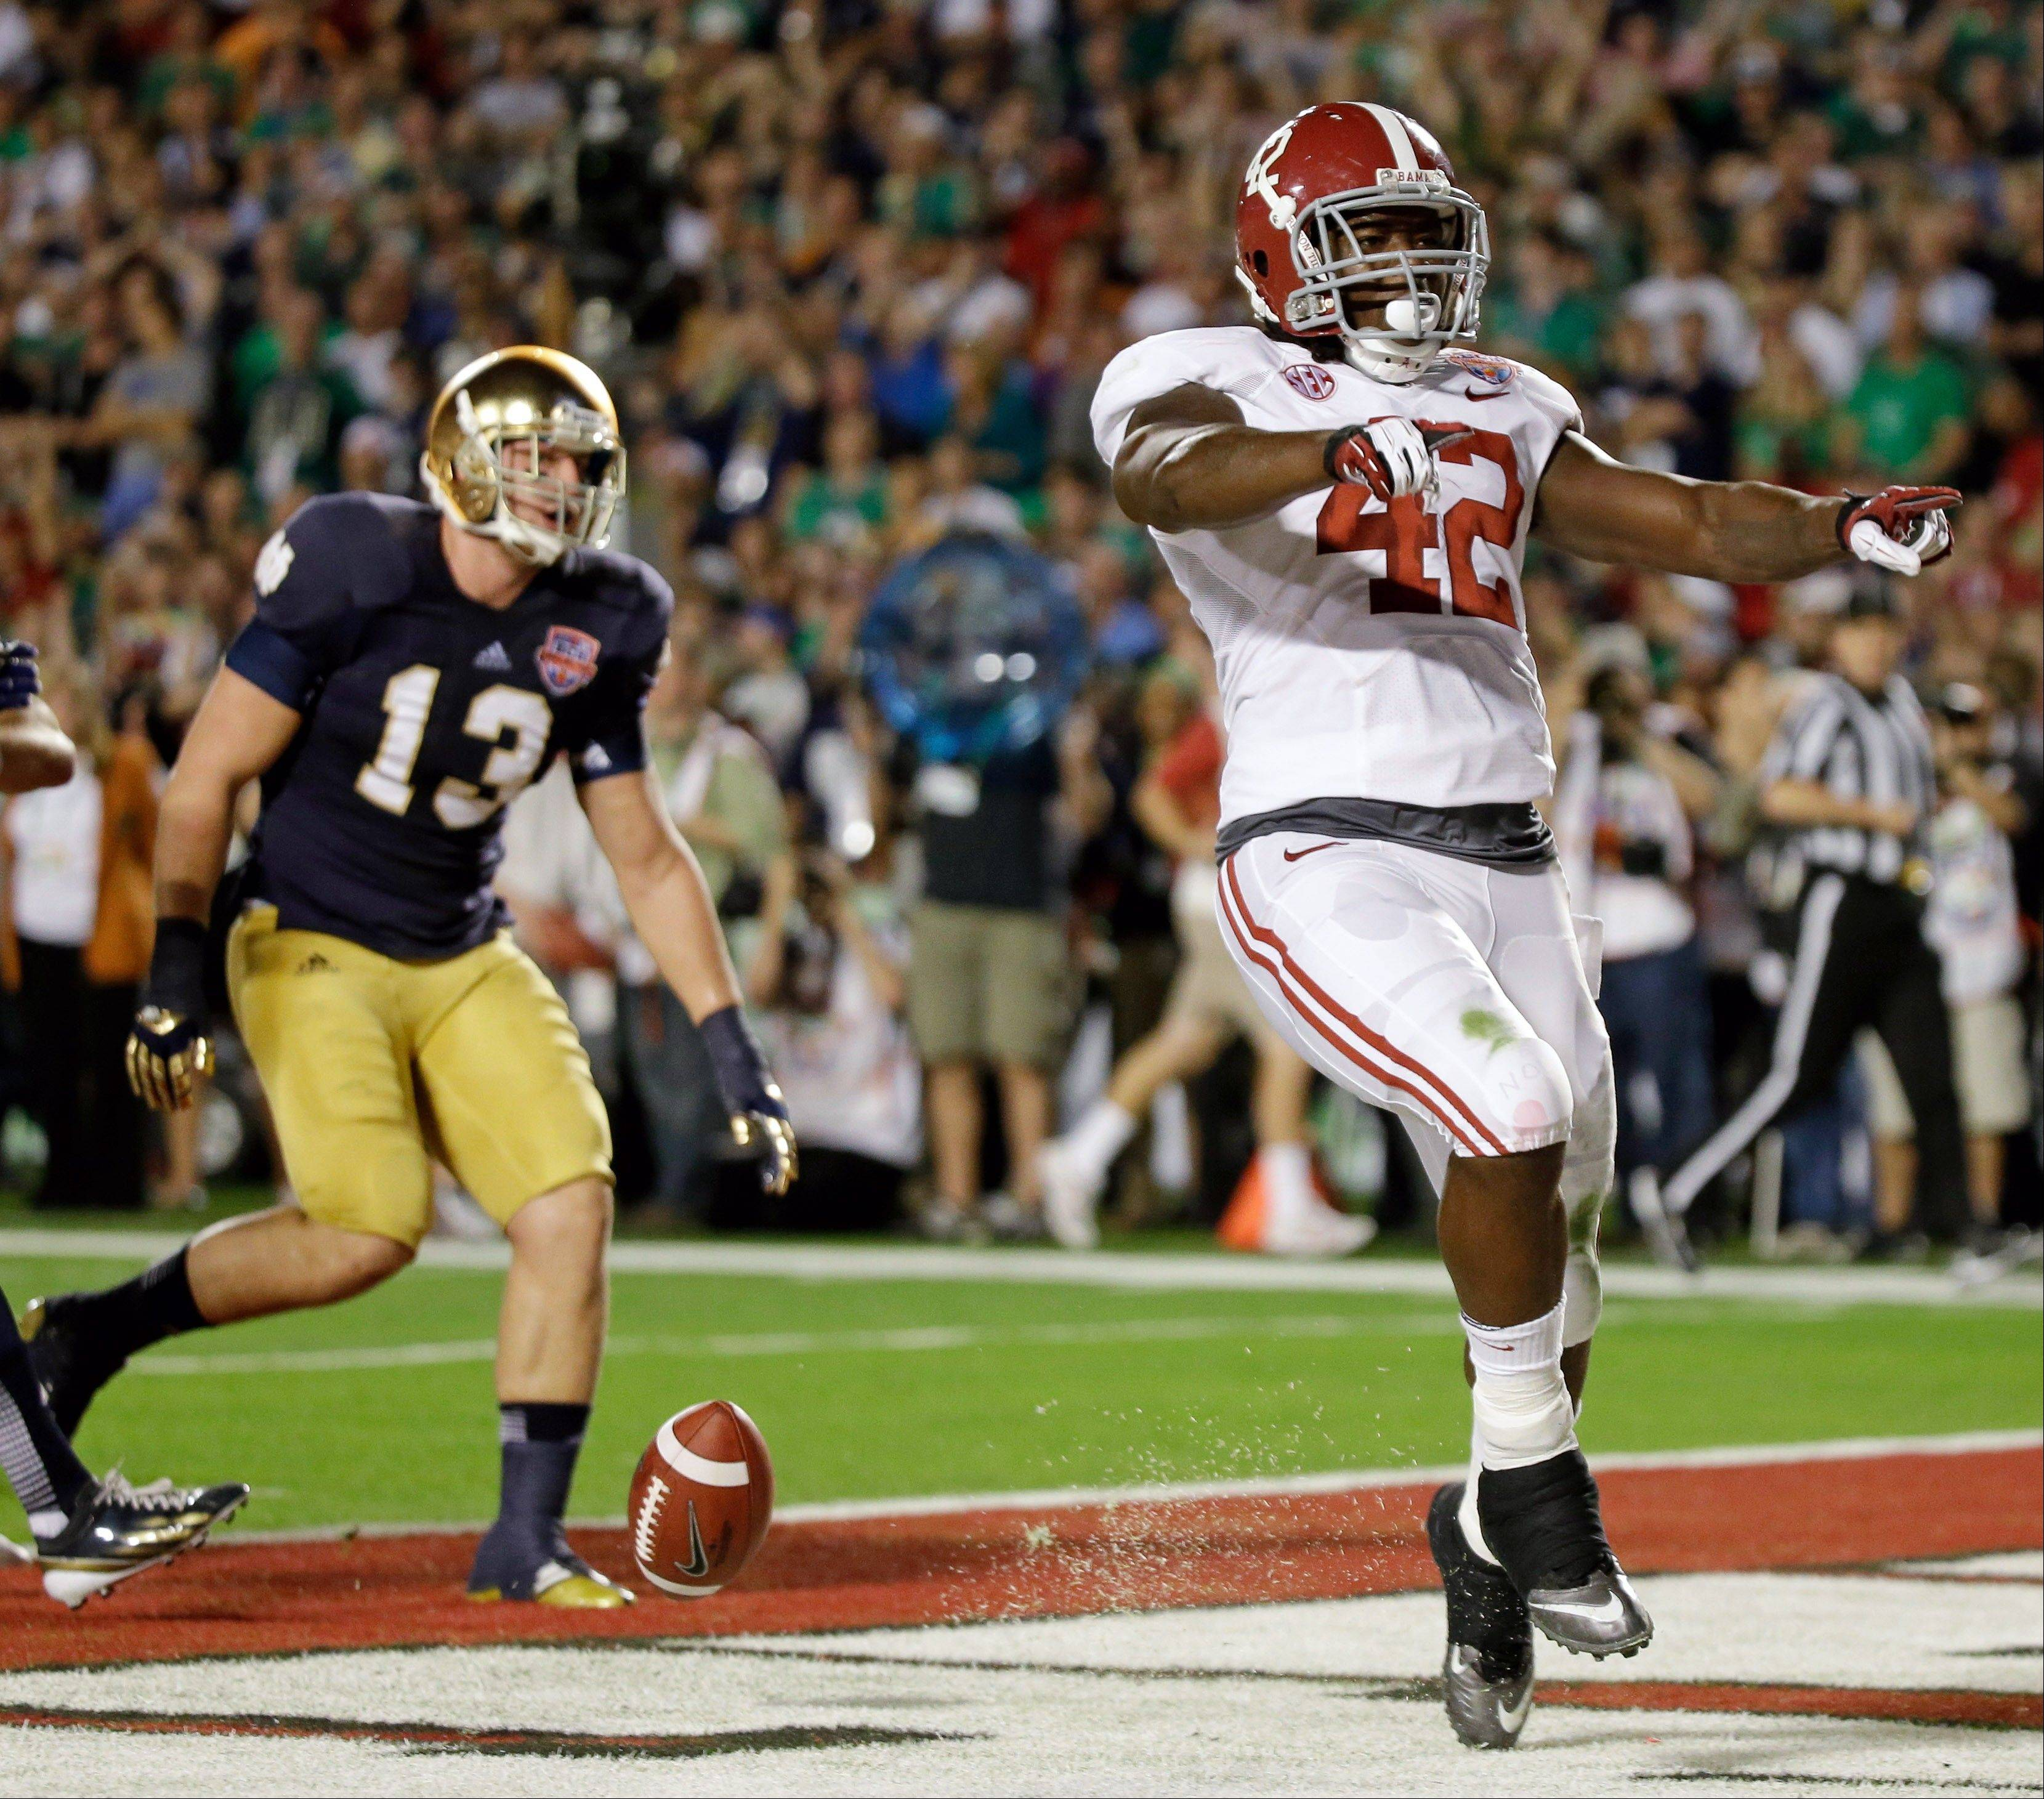 Alabama's Eddie Lacy reacts after rushing for a touchdown during the first half of the BCS championship football game against Notre Dame Monday, Jan. 7, 2013, in Miami.